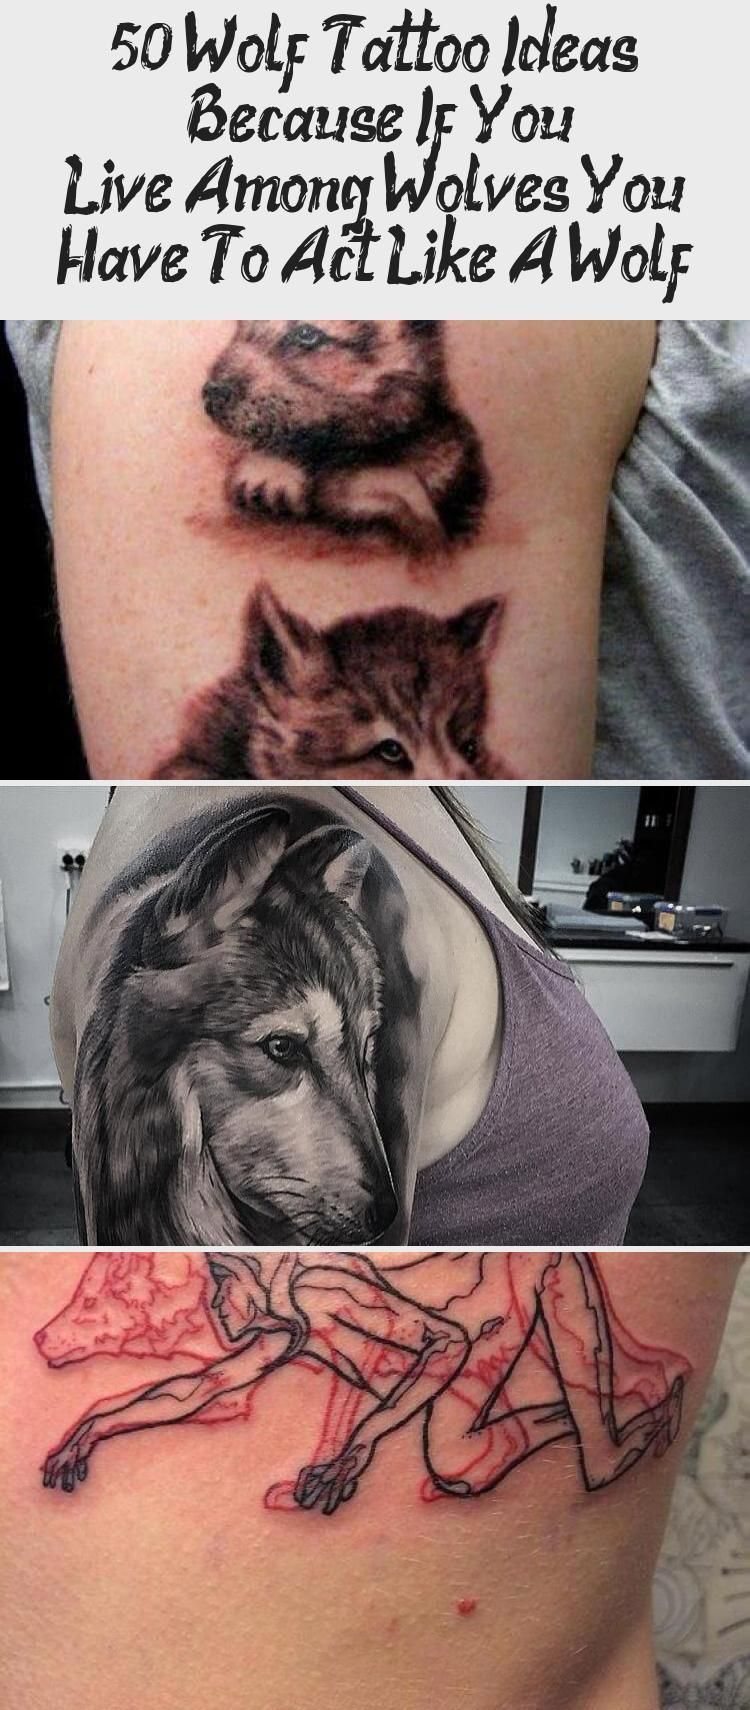 50 Wolf Tattoo Ideas  Because If You Live Among Wolves You Have To Act Like A Wolf  Tattoos  50 Wolf Tattoo Ideas  Because If You Live Among Wolves You Have To Act Like A...